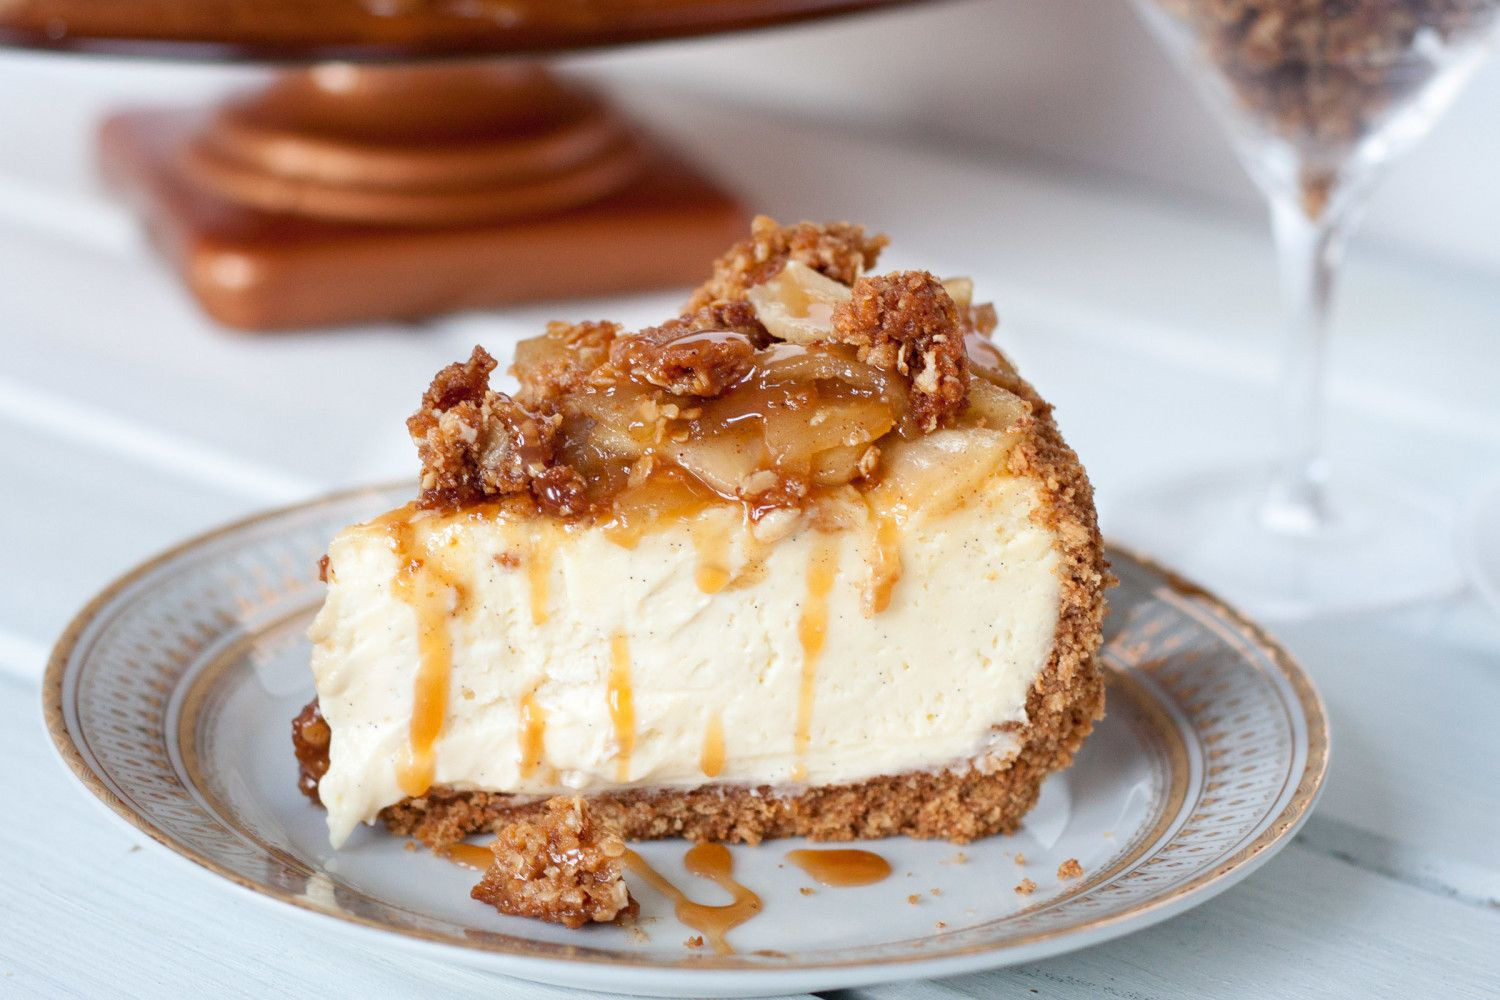 Caramel Cheesecake Recipe  Caramel Apple Cheesecake with Crunchy Streusel Topping